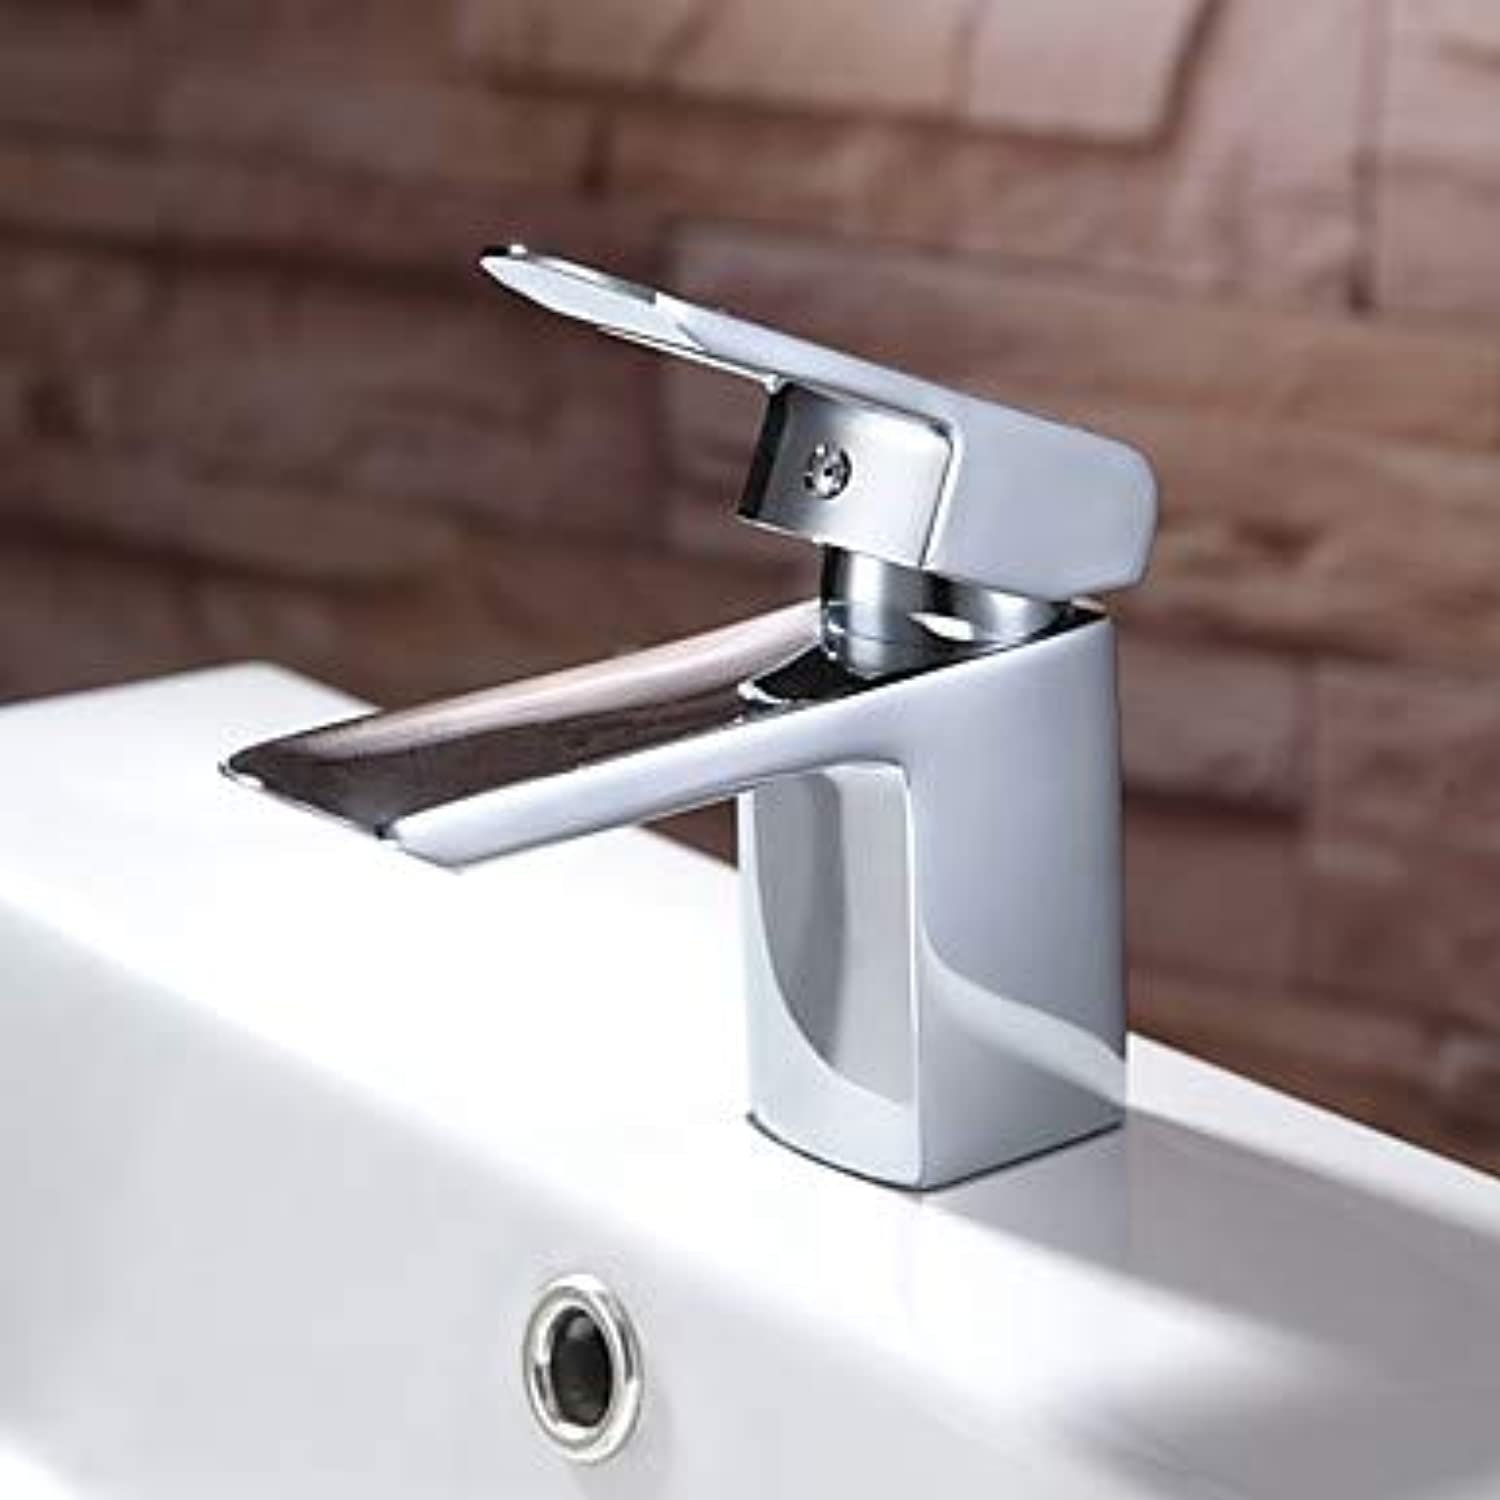 YAMEIJIA Contemporary Centerset Waterfall Ceramic Valve Single Handle One Hole Chrome, Bathroom Sink Faucet